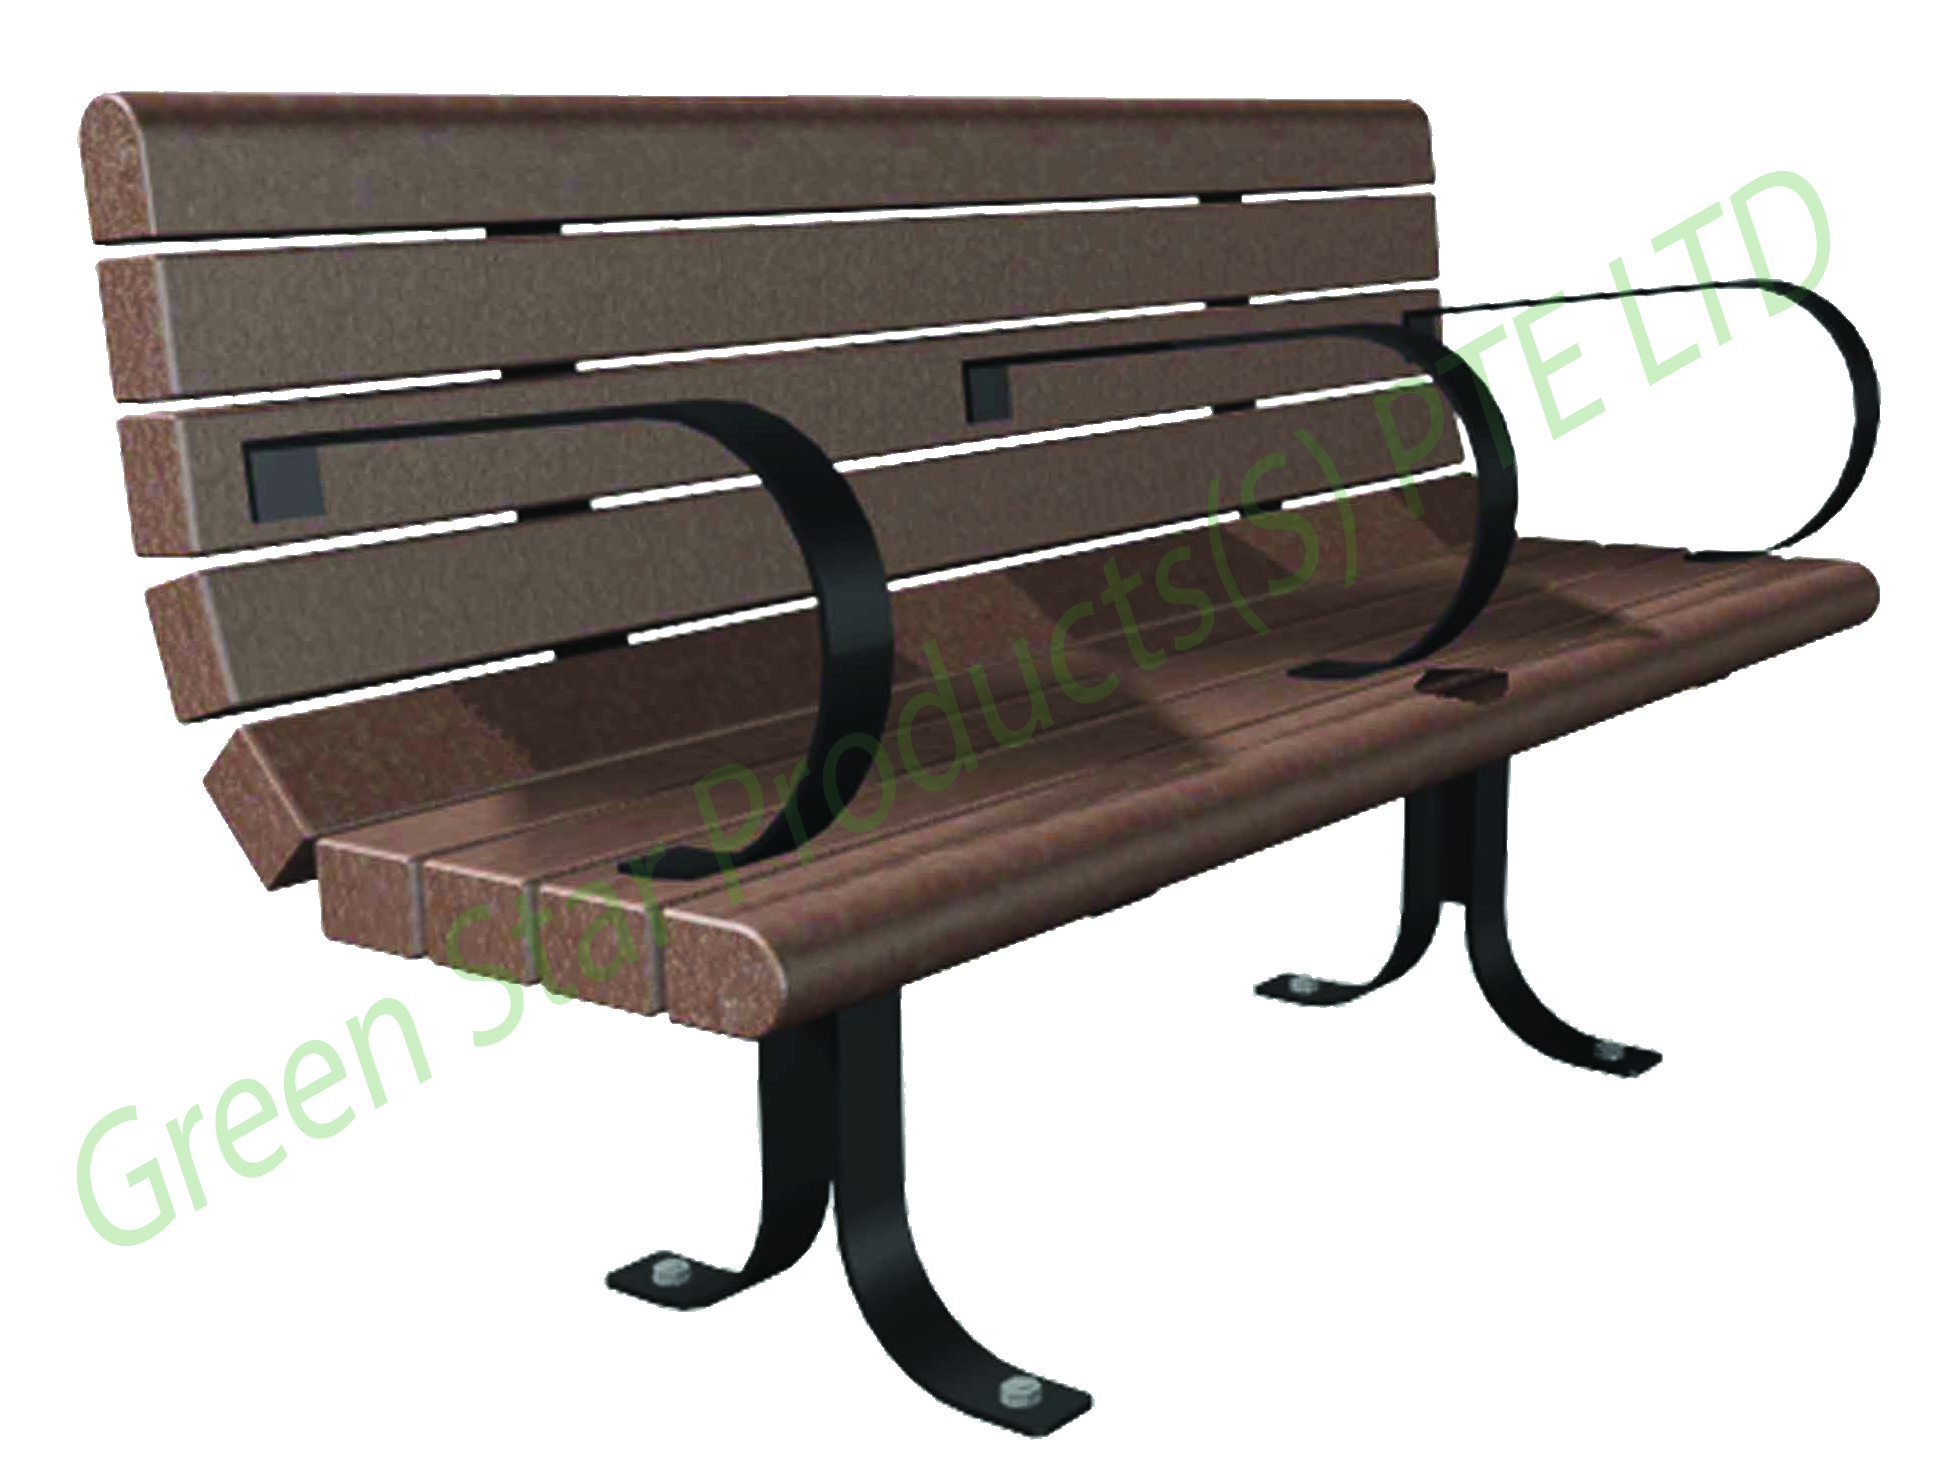 Outdoor%20furnitture-recycled%20plastic%20lumber%20furniture